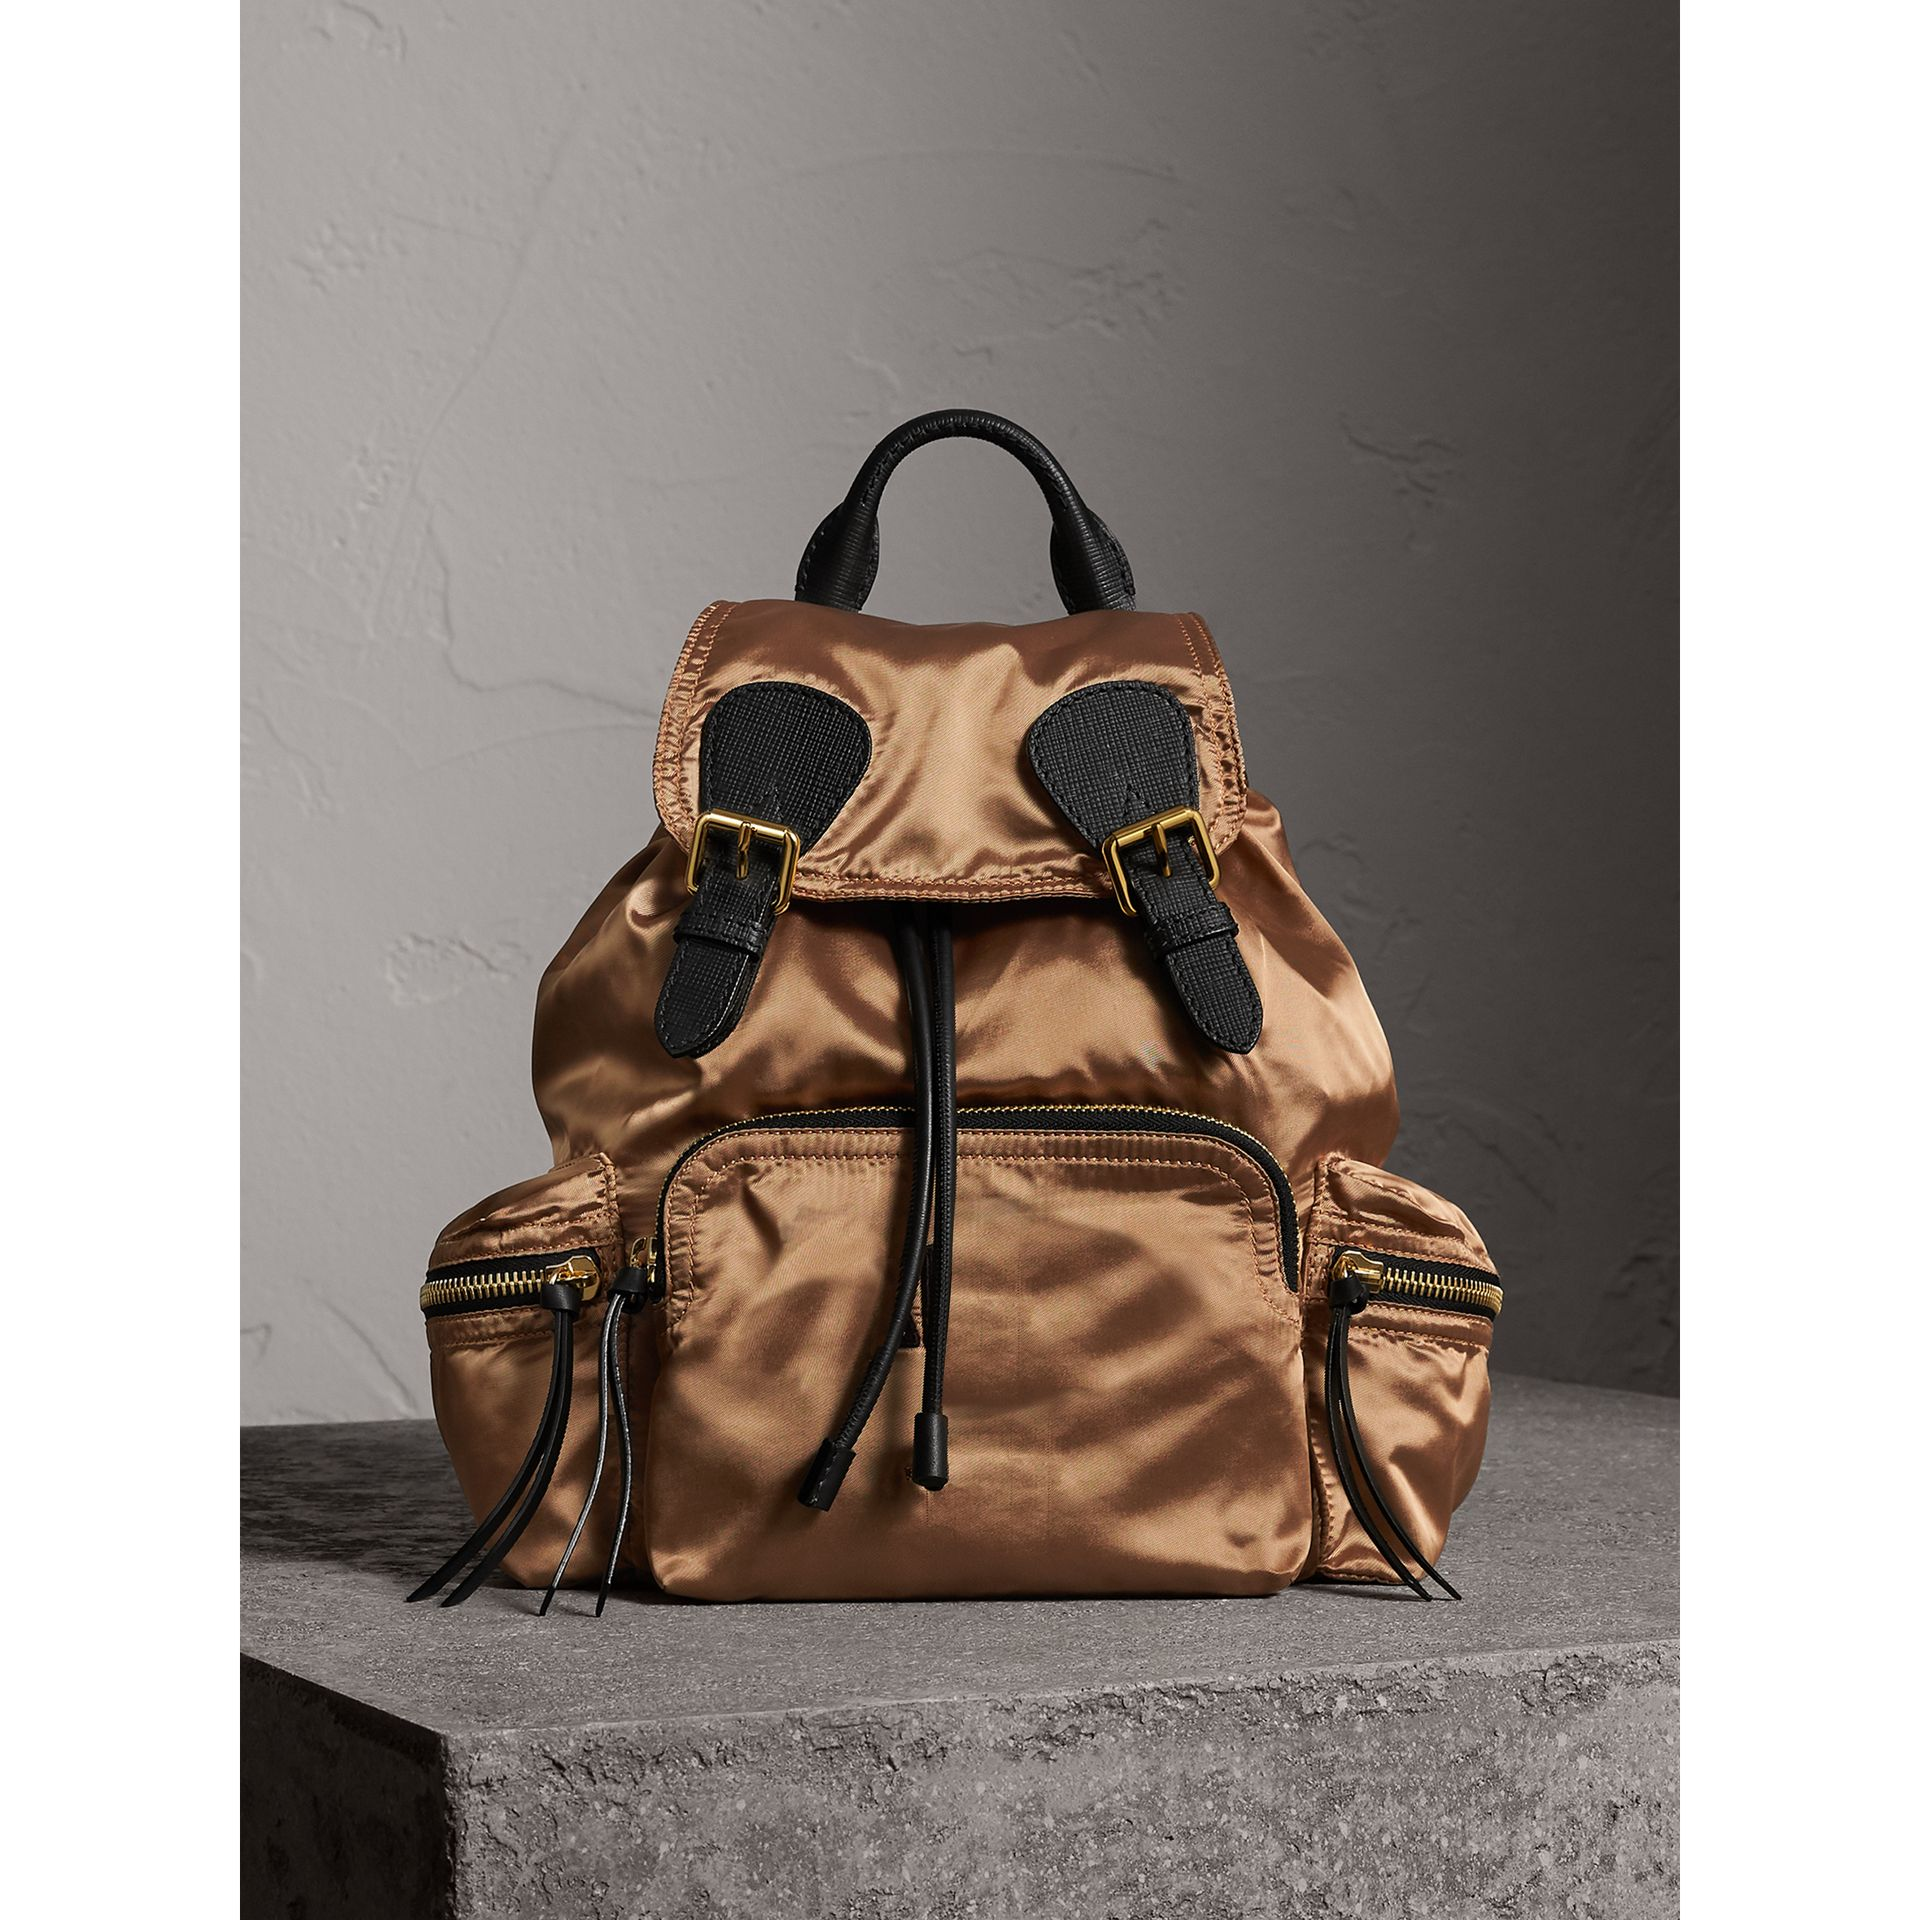 Sac The Rucksack moyen en nylon bicolore et cuir (Or/noir) - Femme | Burberry - photo de la galerie 6